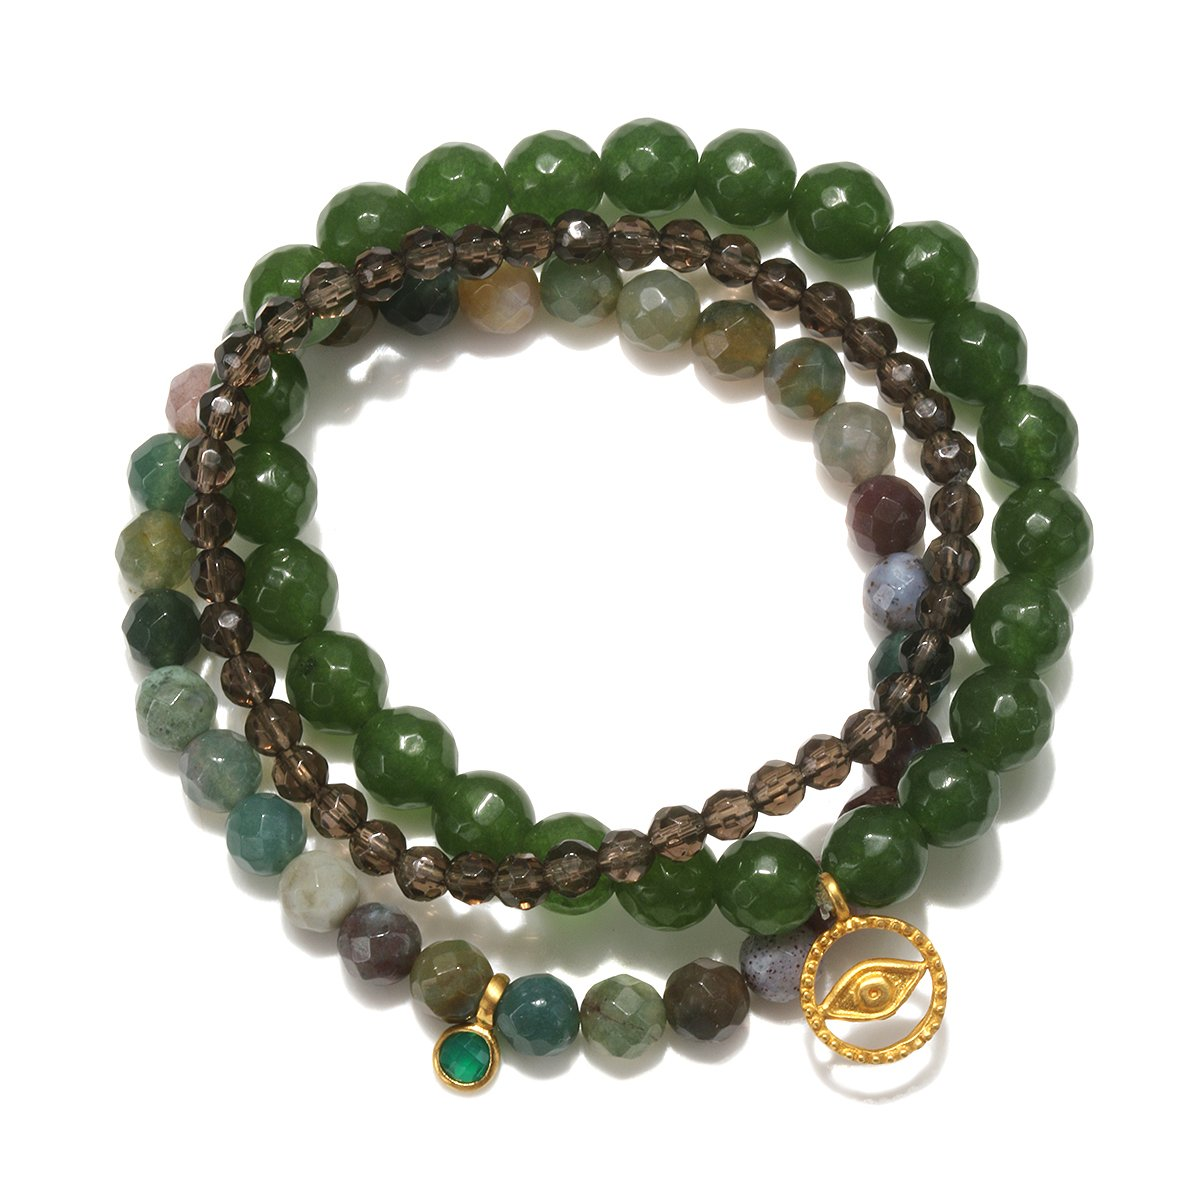 Satya Jewelry Jade, Fancy Jasper, Smokey Quartz Gold Plate Evil Eye Stretch Bracelet BG22-SET